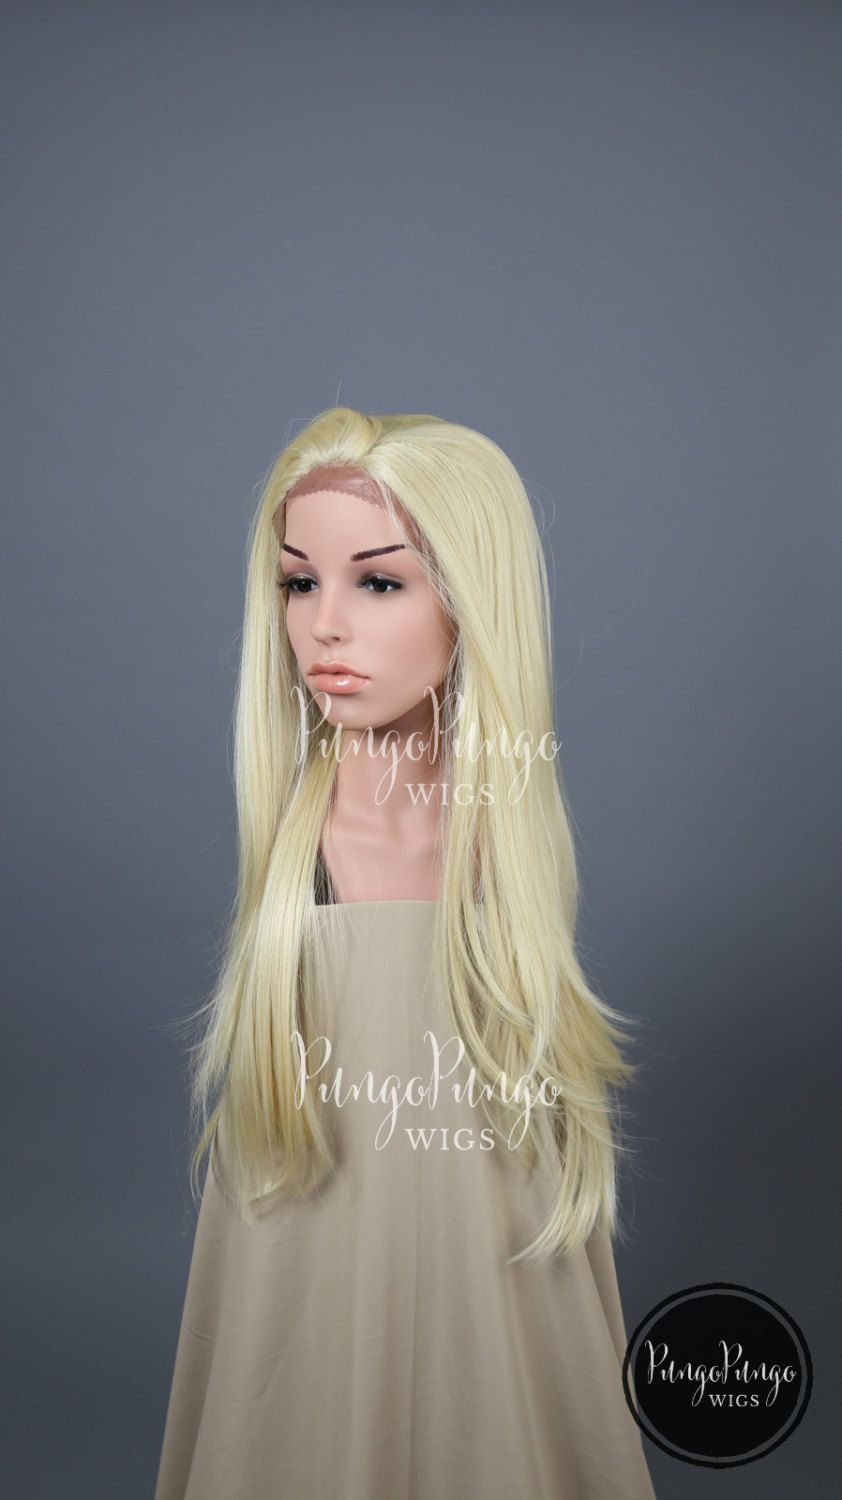 platinum blonde wig long straight lace front wig halloween costume daenerys - Halloween Costumes With Blonde Wig